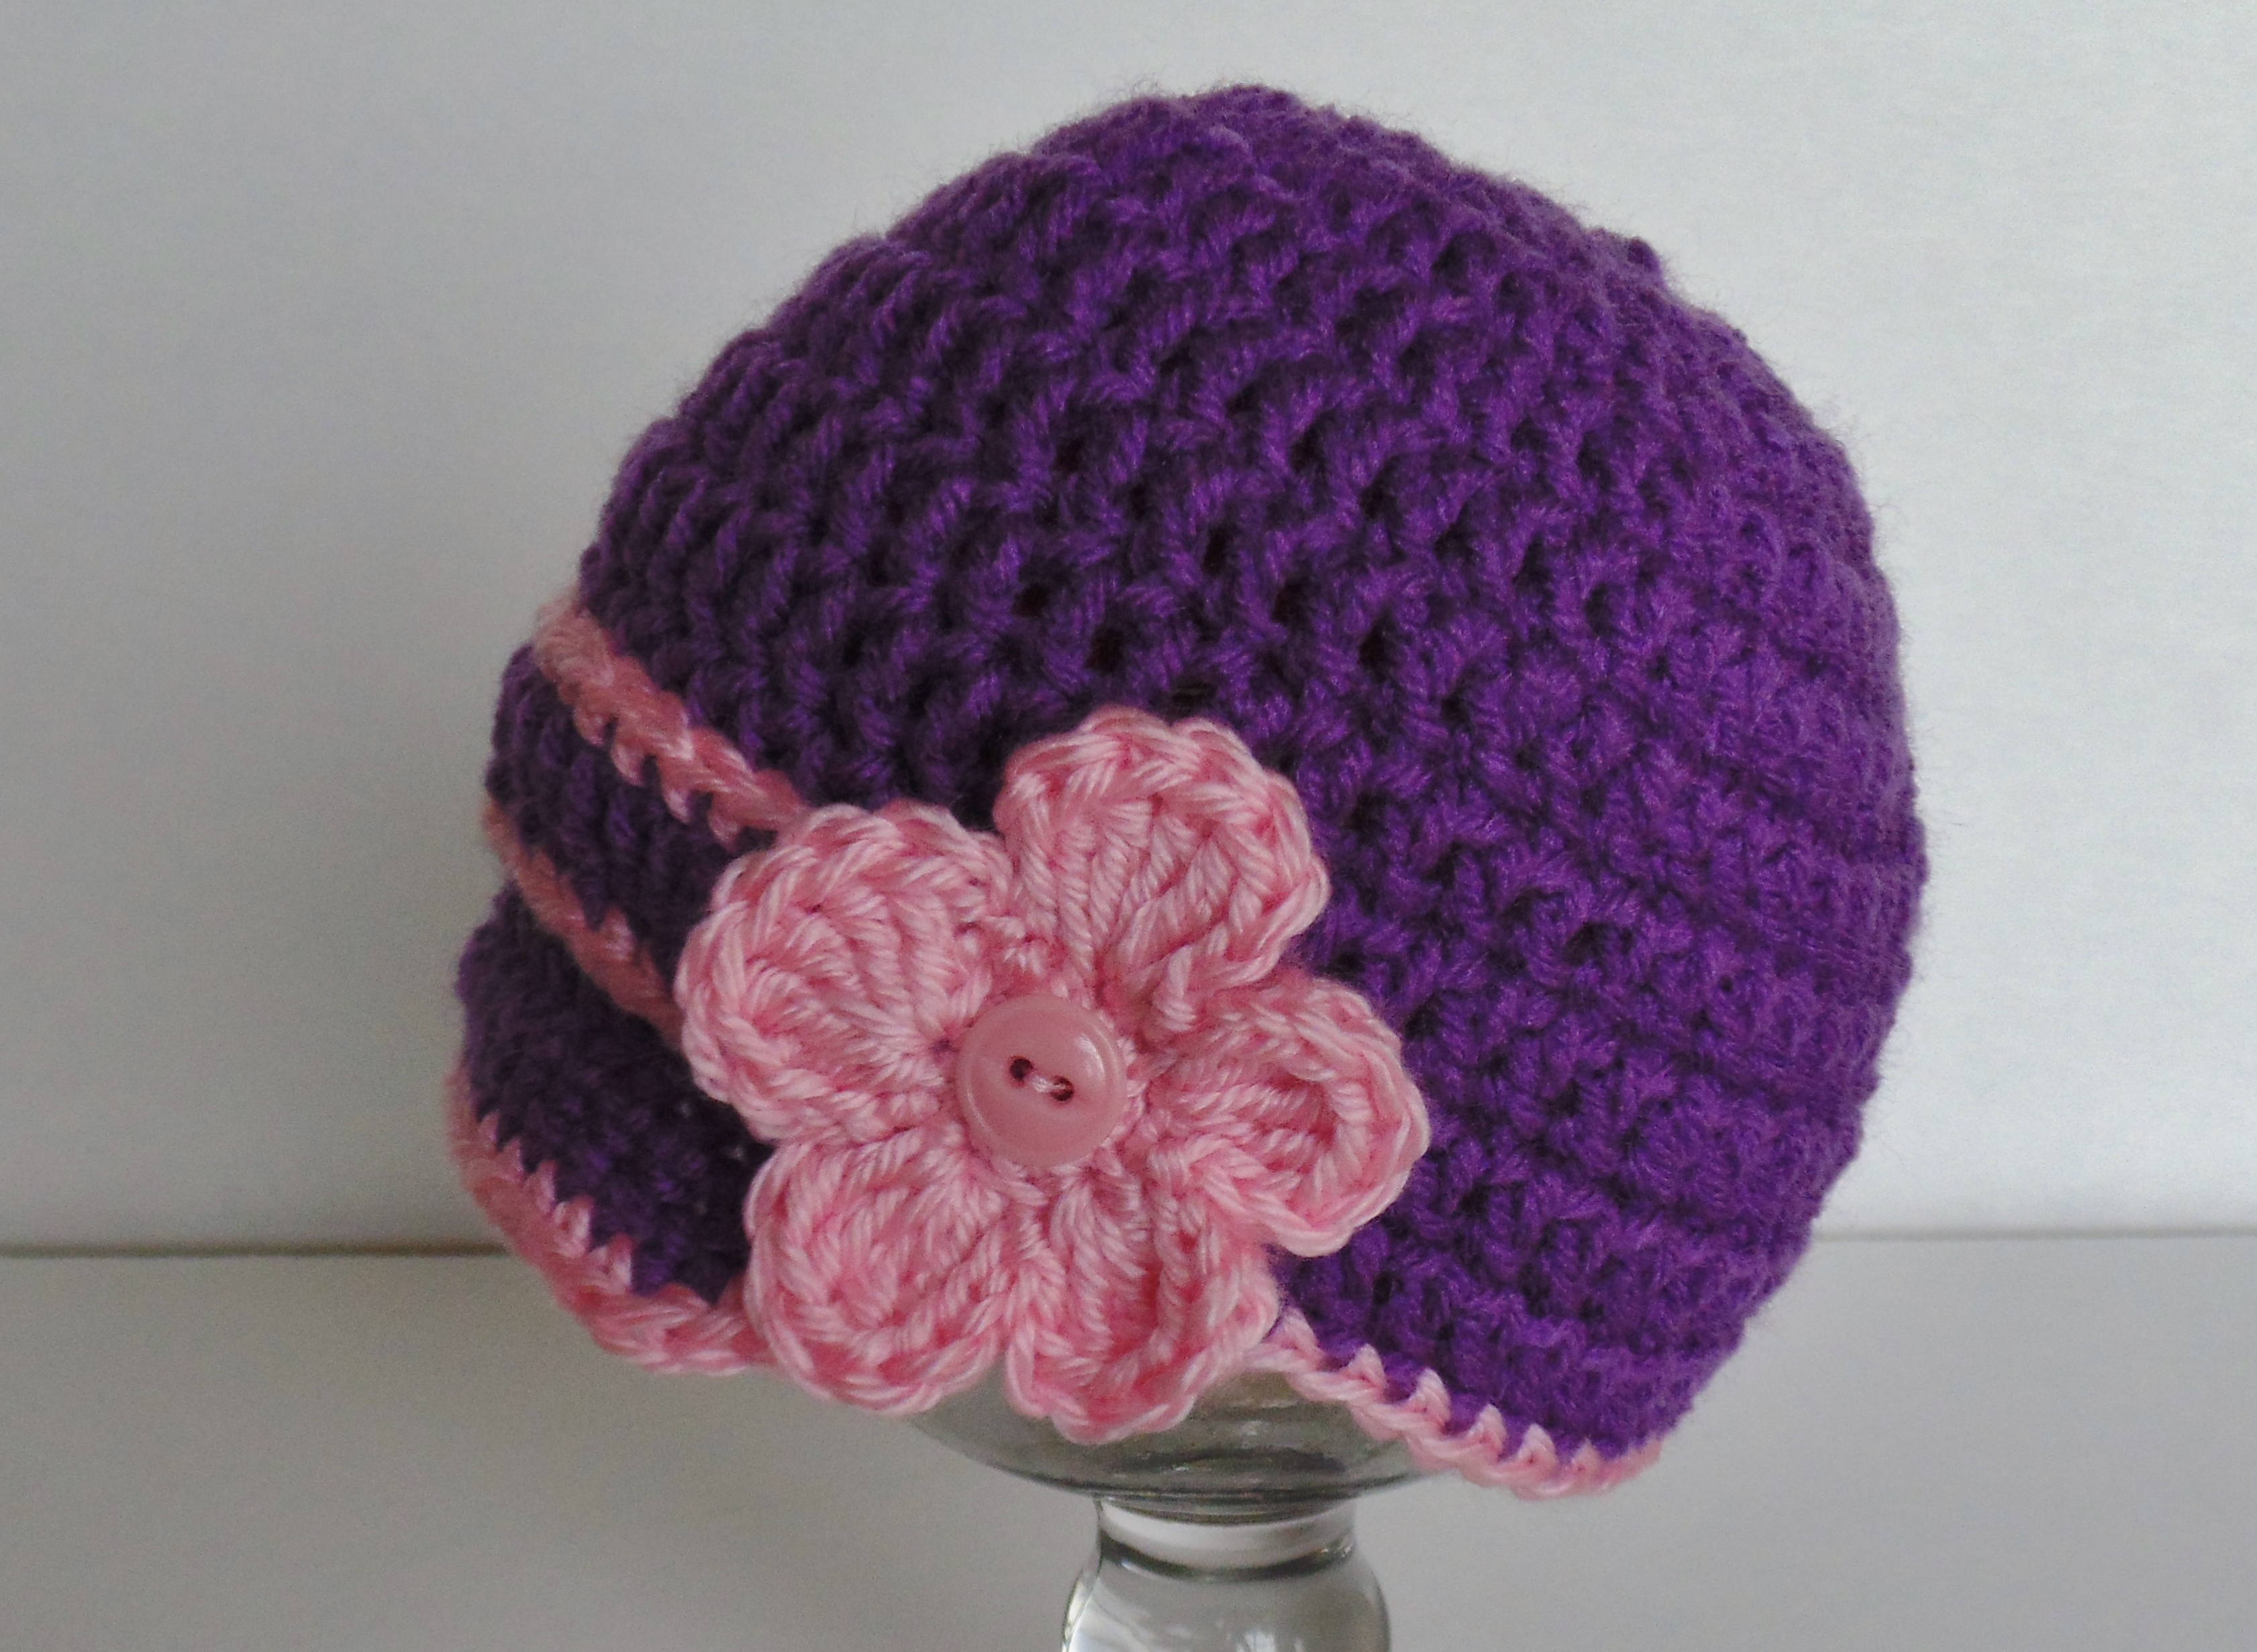 Crochet Patterns Instructions : Crochet any hat Instructions acraftyday